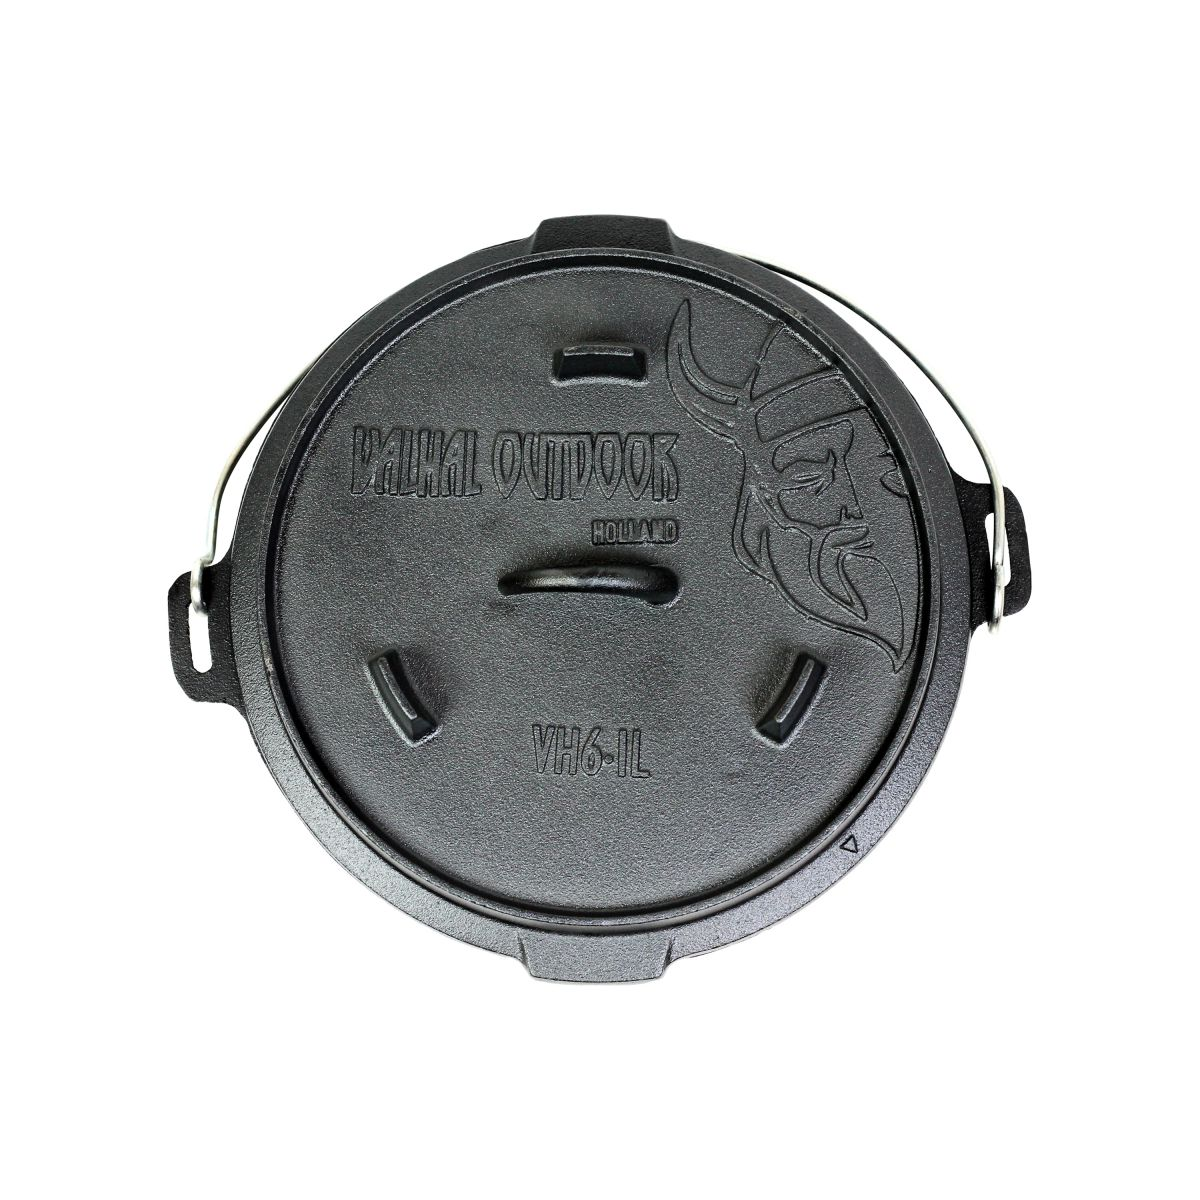 vh61l dutch oven 61l with feet